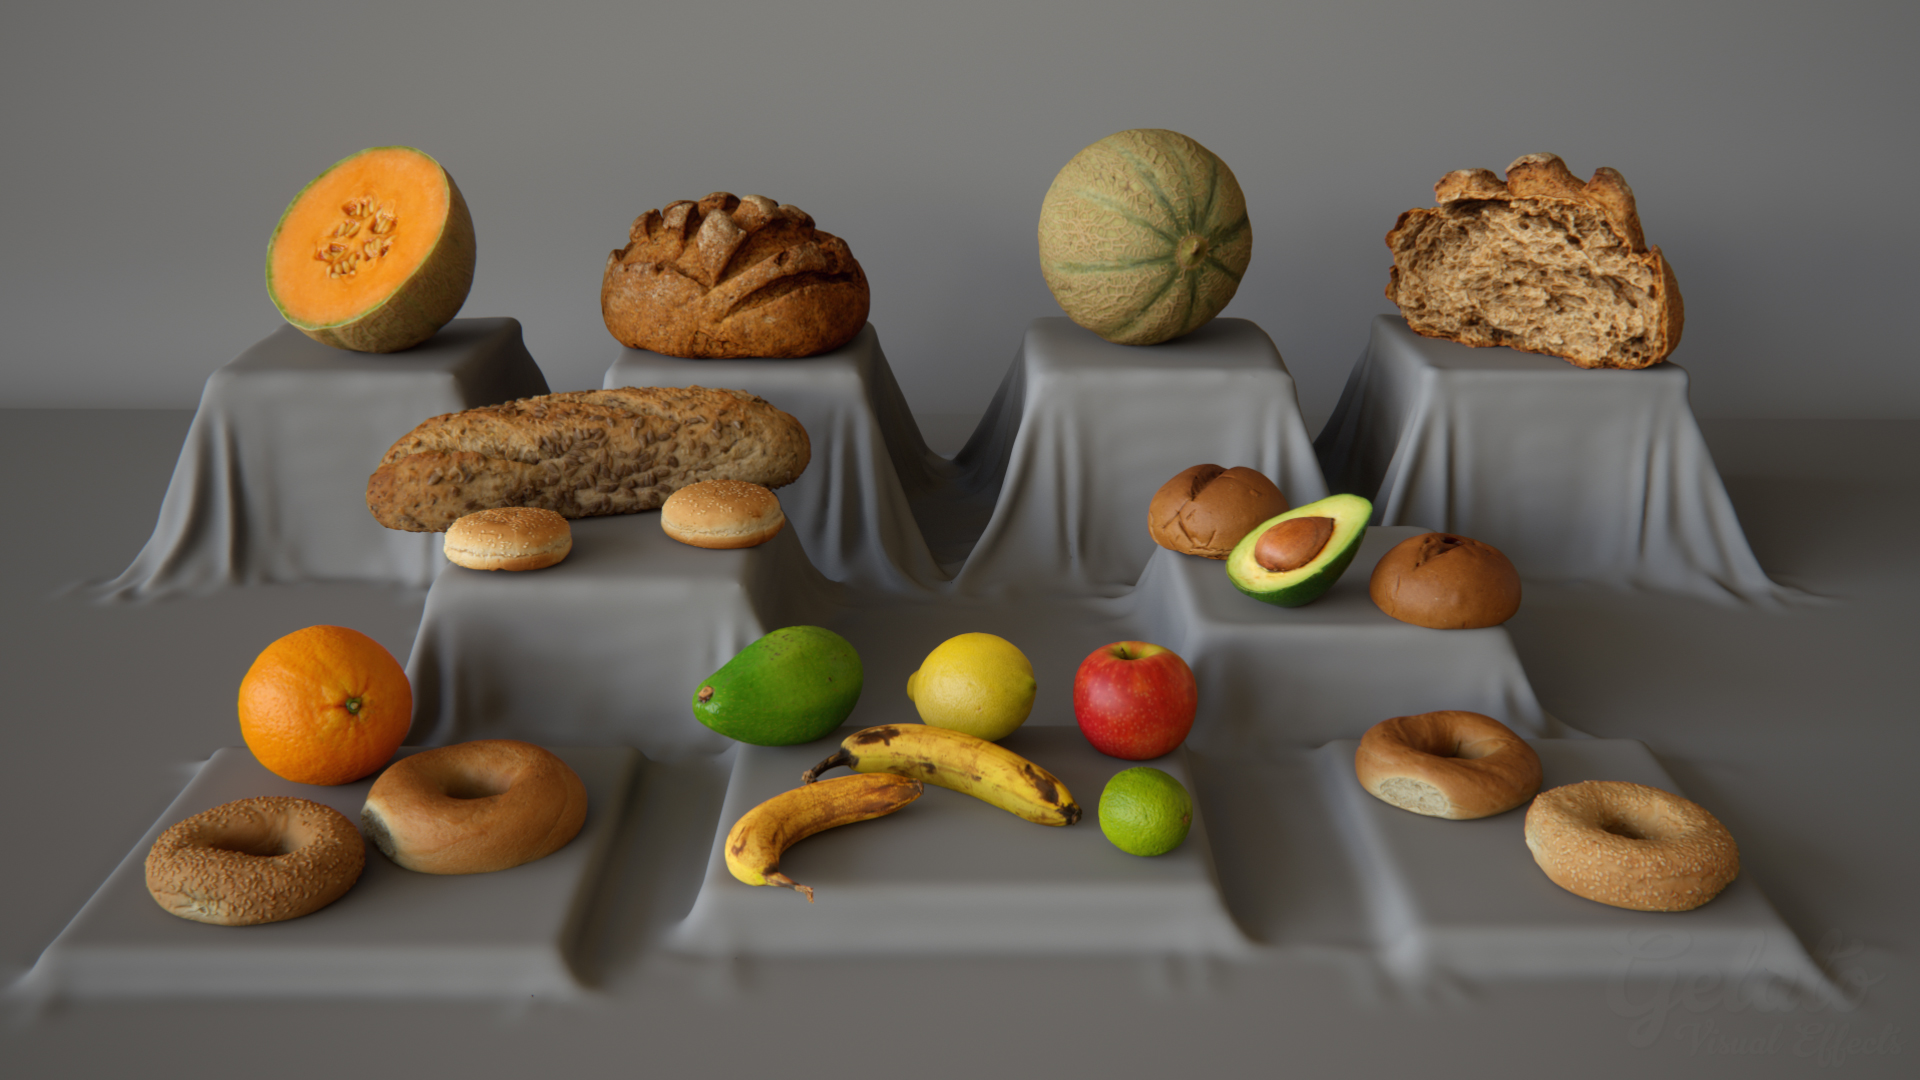 Just a few of the 3D Scans already availible in the 3D Scan Store.